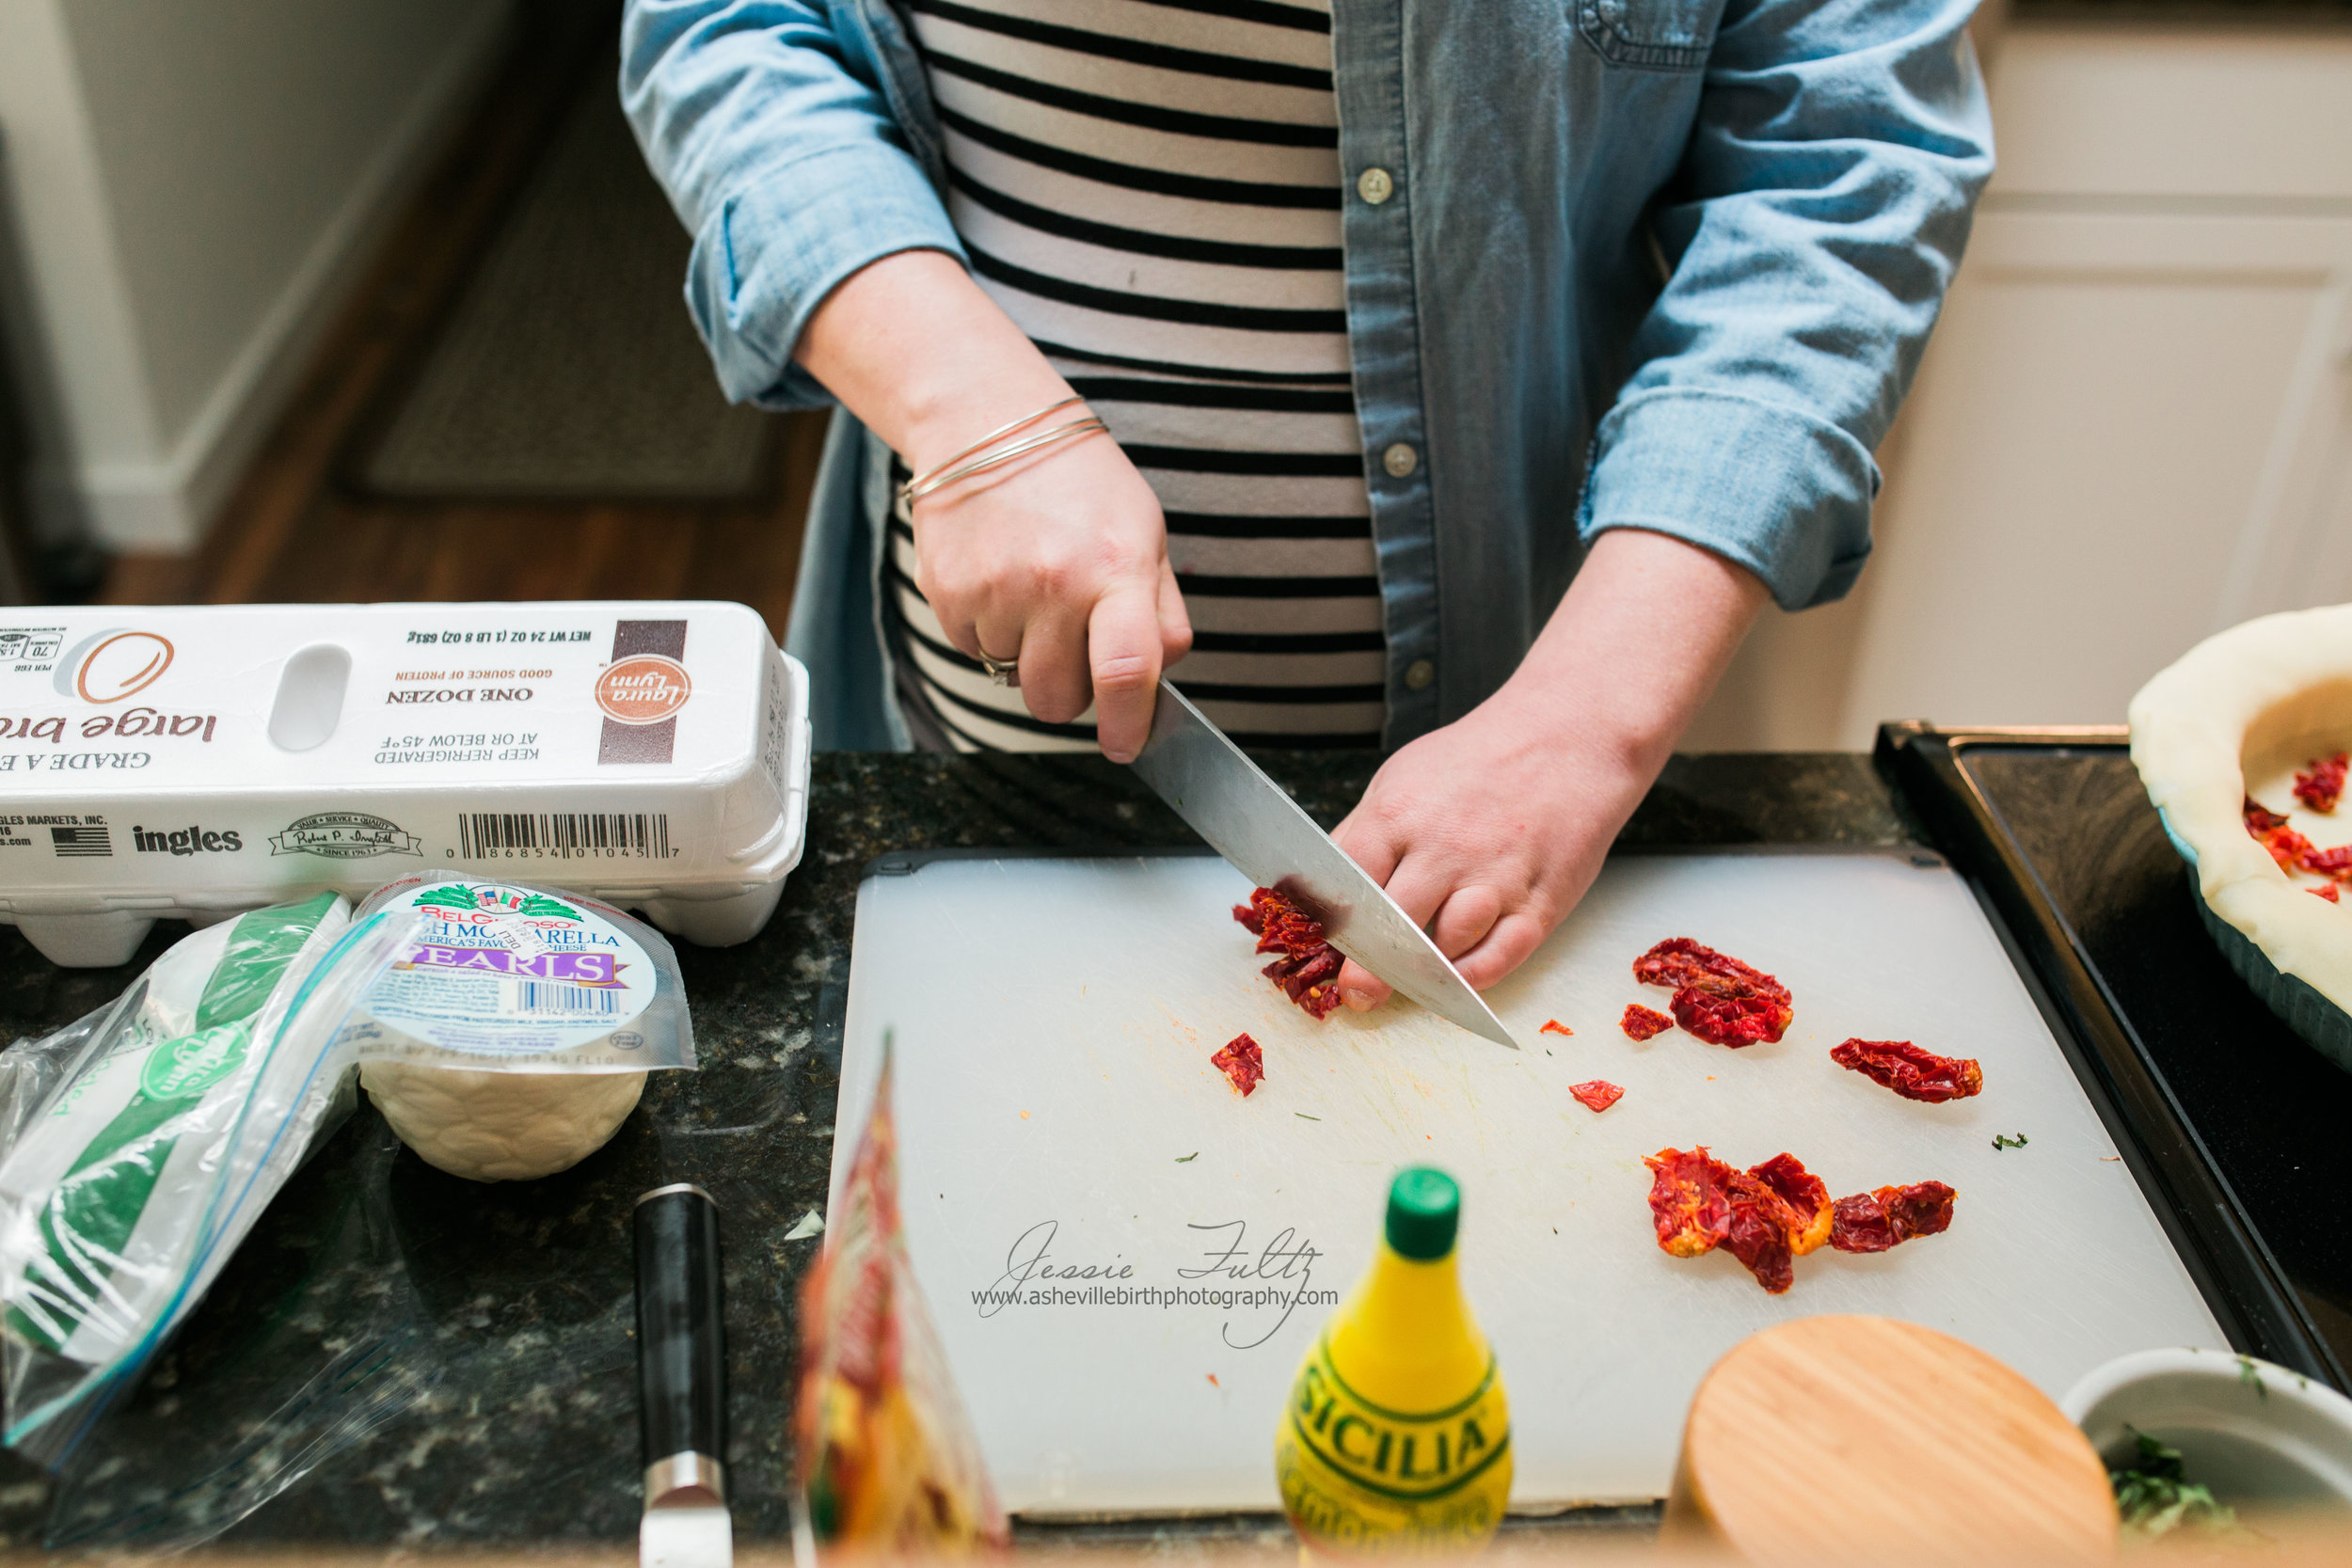 close-up picture of a pregnant woman chopping sun-dried tomatoes on a white cutting board